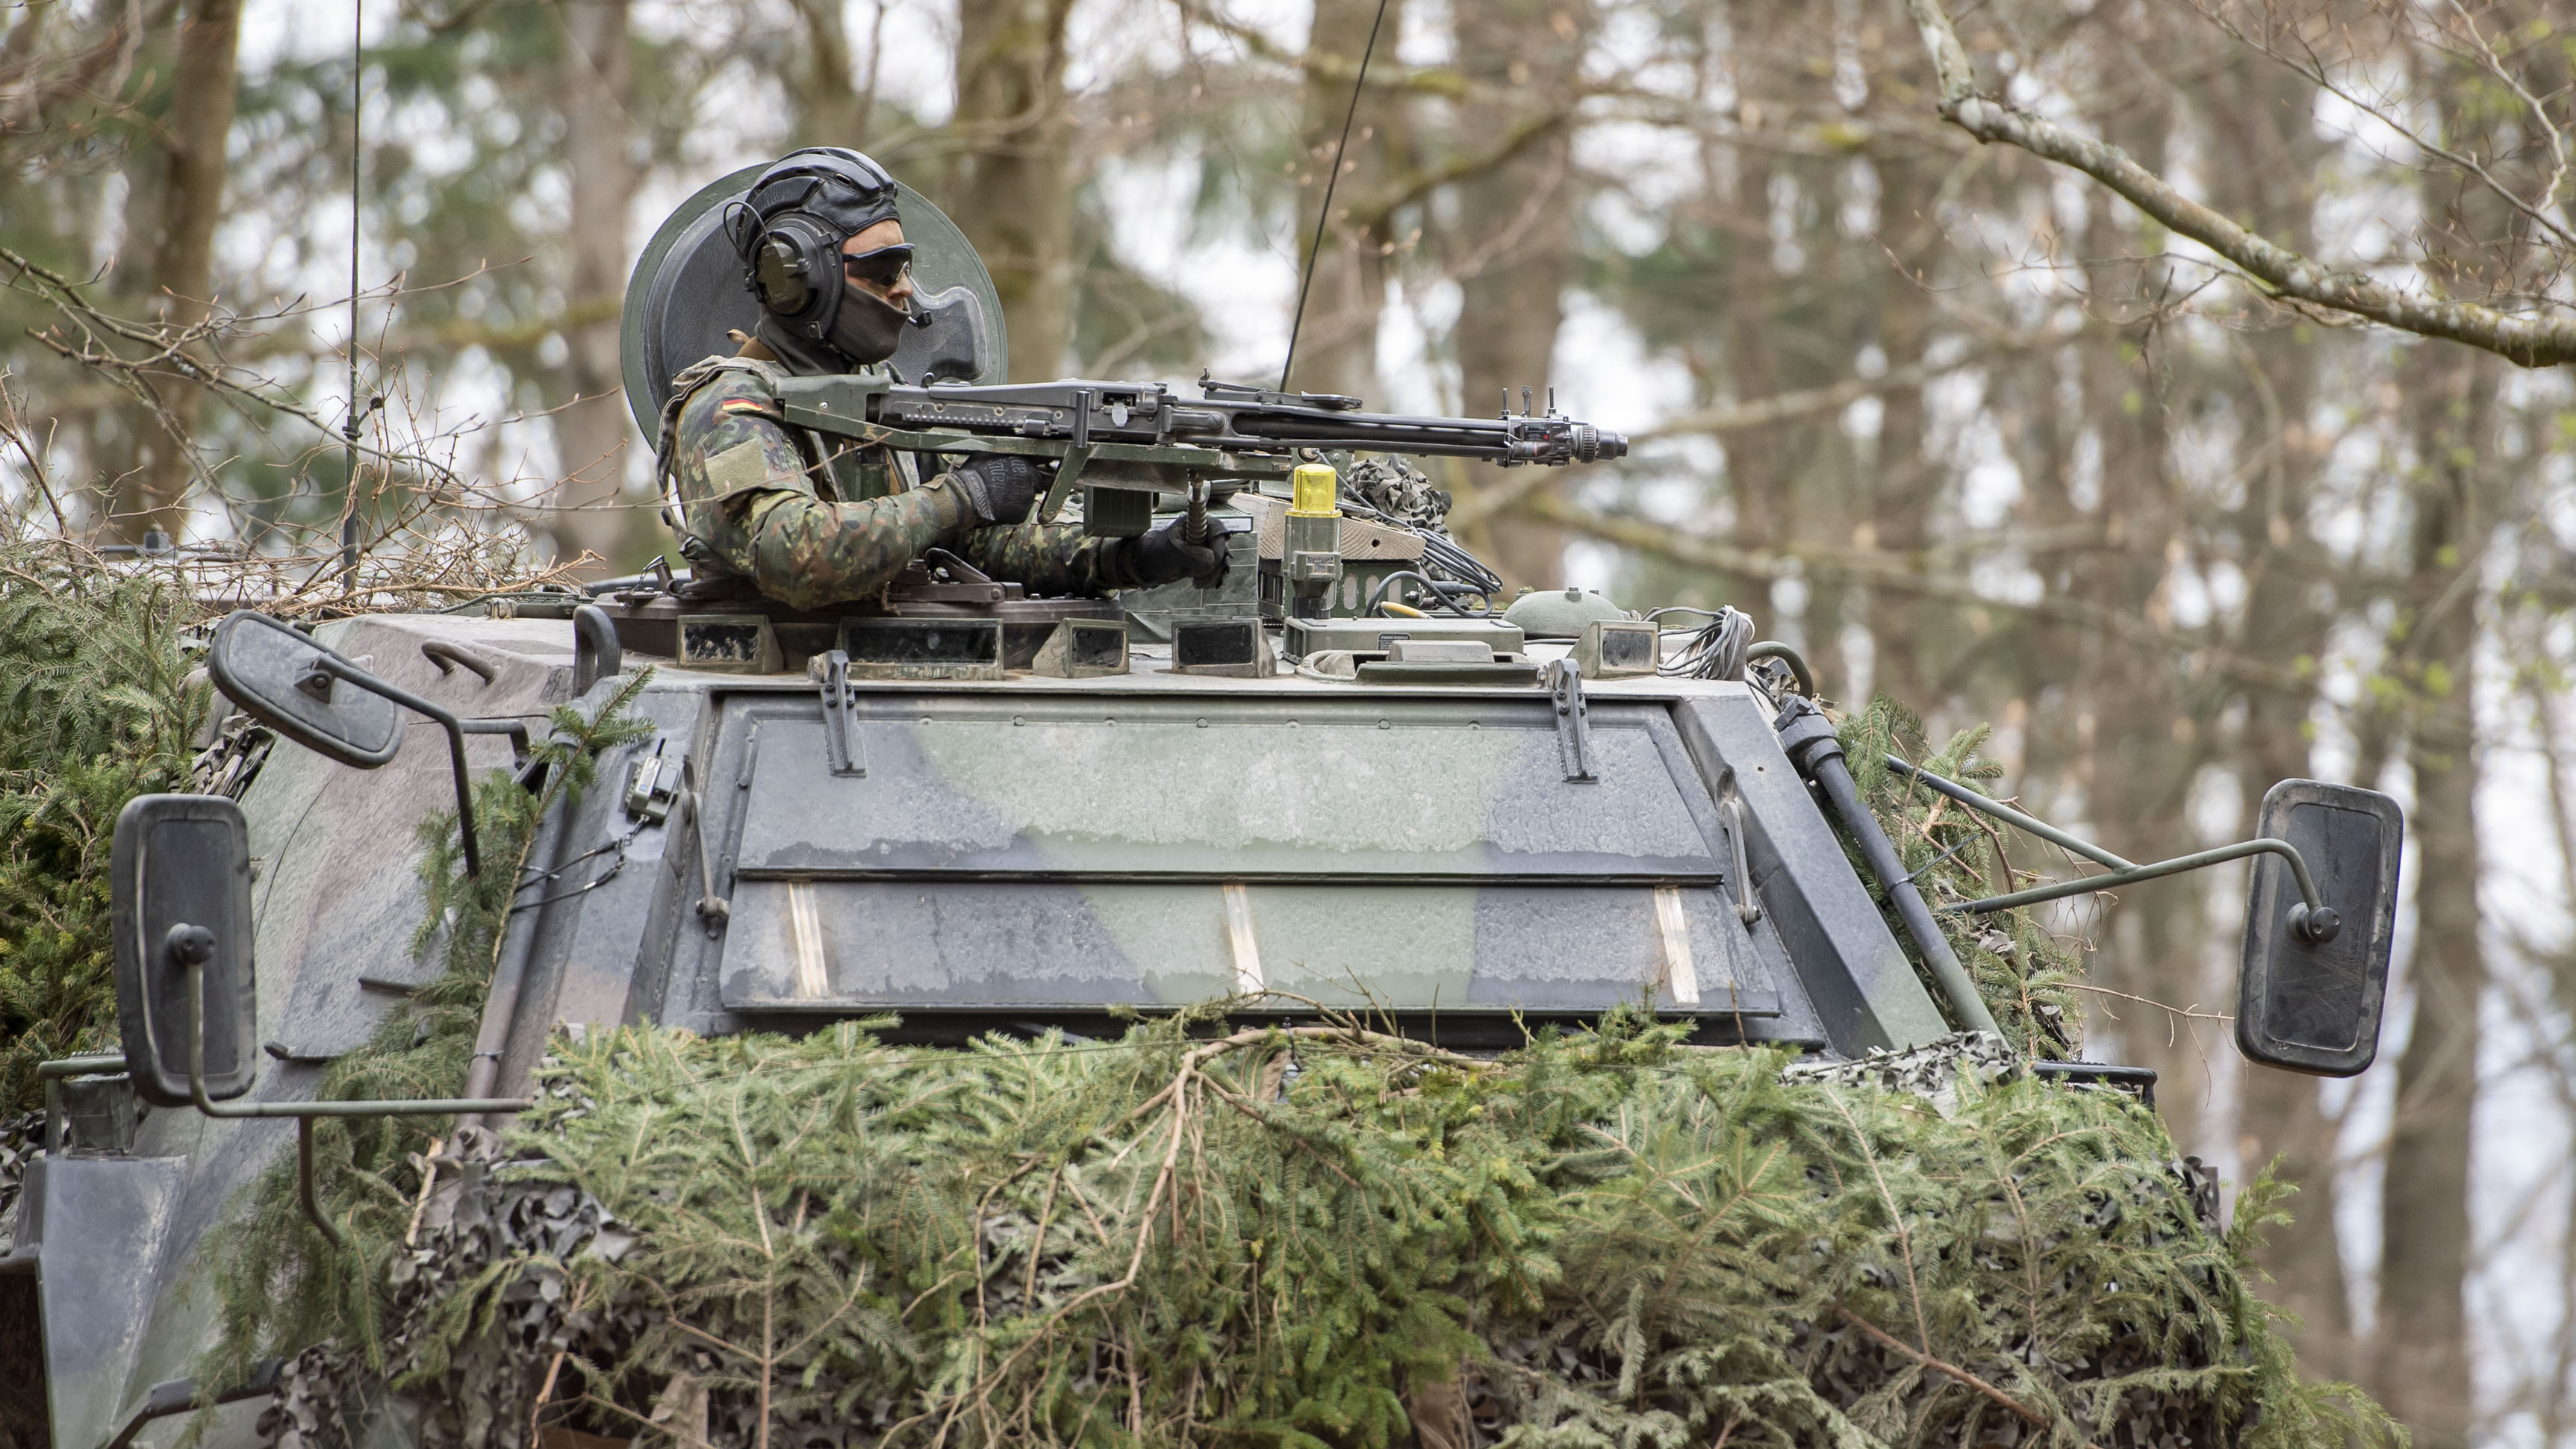 A soldier of the German Bundeswehr secures a Tactical Operations Center during the Allied Spirit X international military exercises at the U.S. 7th Army training center on April 9, 2019 near Hohenfels, Germany. Approximately 5,600 soldiers, including around 1,300 from the U.S. and the rest from Denmark, Finland, Germany, Israel, Italy, Lithuania, Moldova, Netherlands, Poland, Slovakia, Spain, Sweden, Turkey, and the United Kingdom are taking part in the nearly three-week long exercises. (Photo by Lennart Preiss/Getty Images)